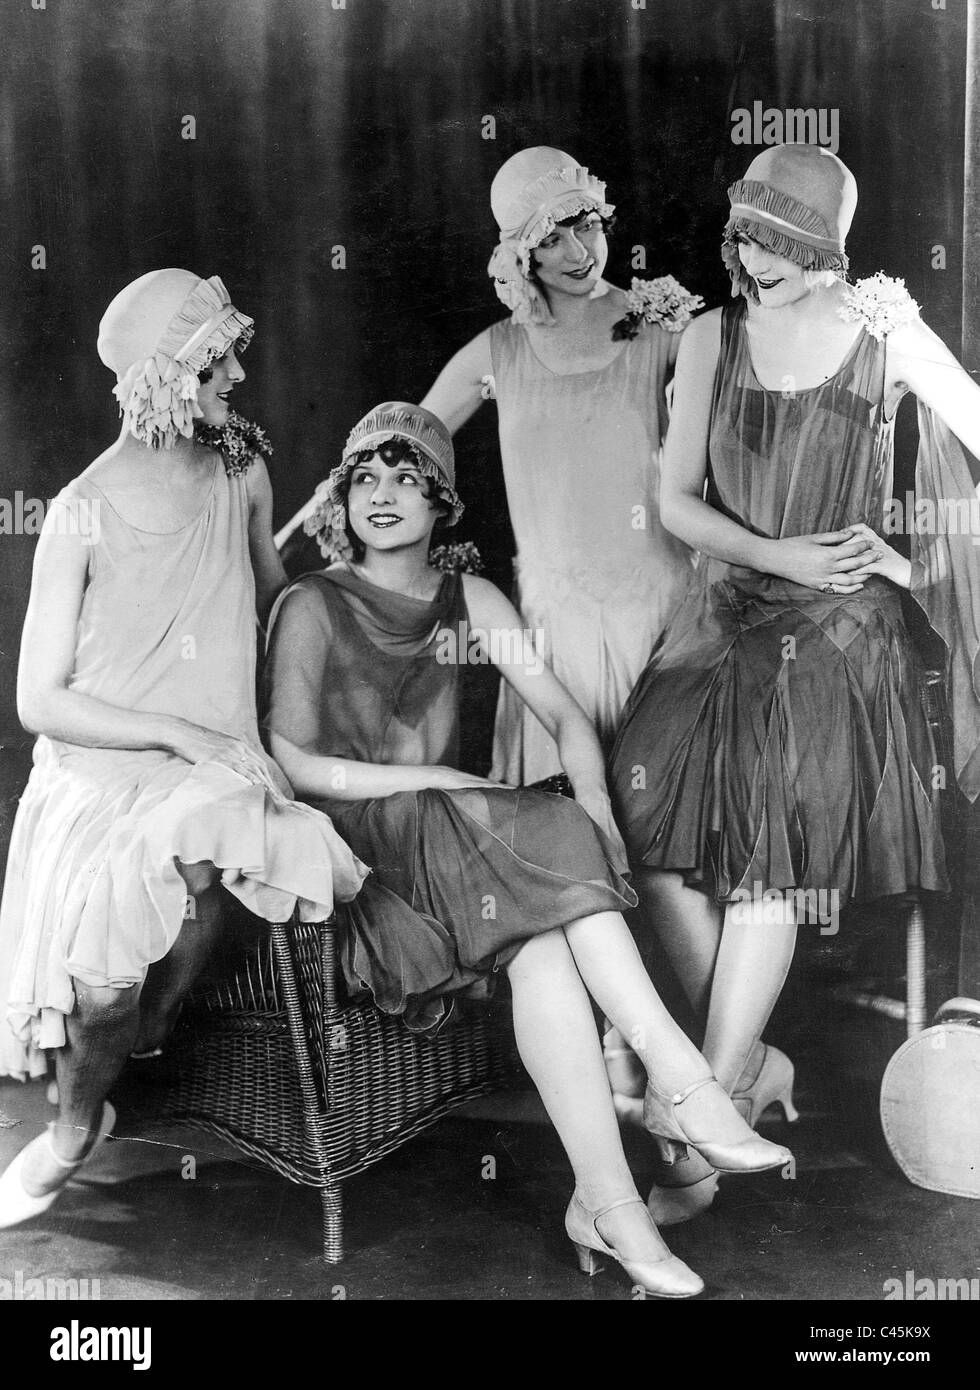 Women's fashions from 1927 Stock Photo - Alamy